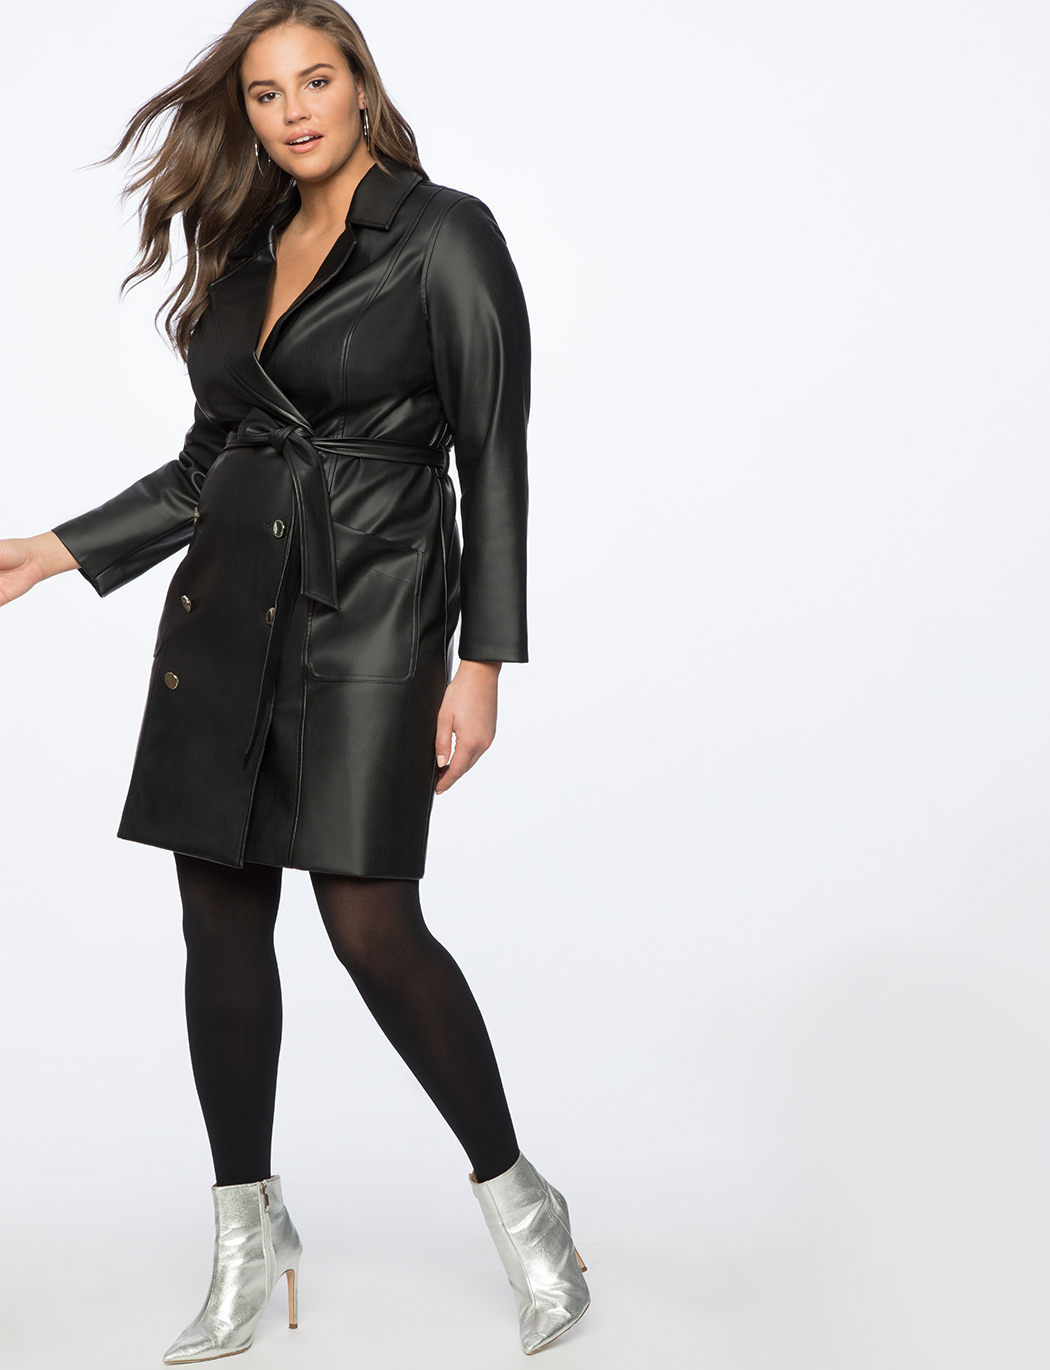 Faux Leather Trench Dress | Women\'s Plus Size Dresses | ELOQUII